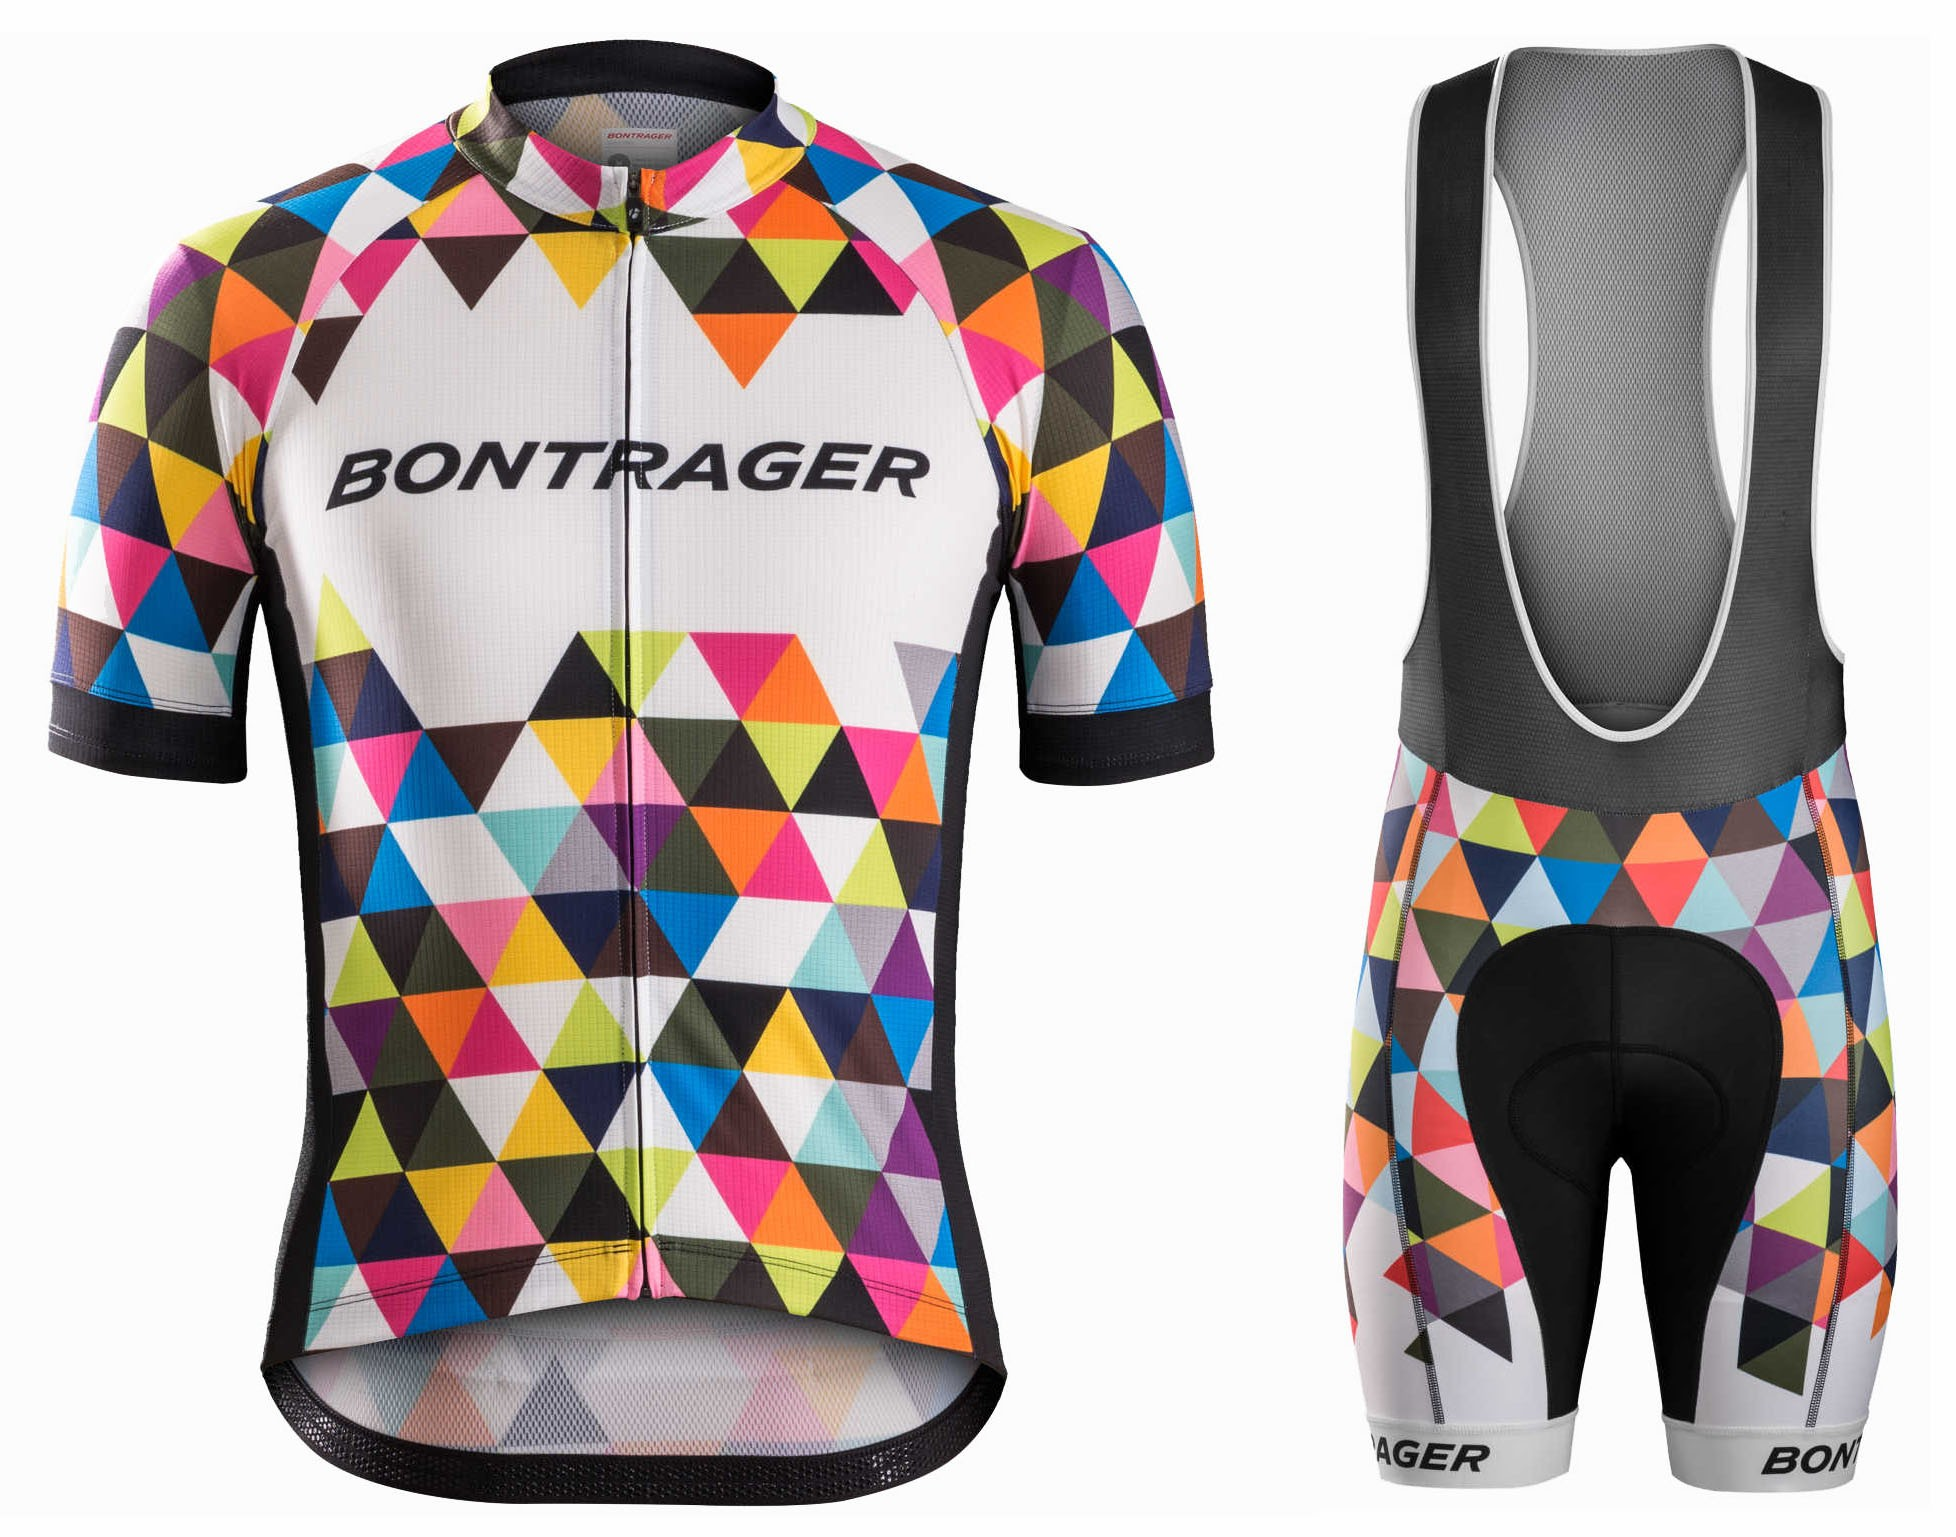 2016 Bontrager Specter Colorful Cycling Jersey And Bib Shorts Set 2e3b6c862